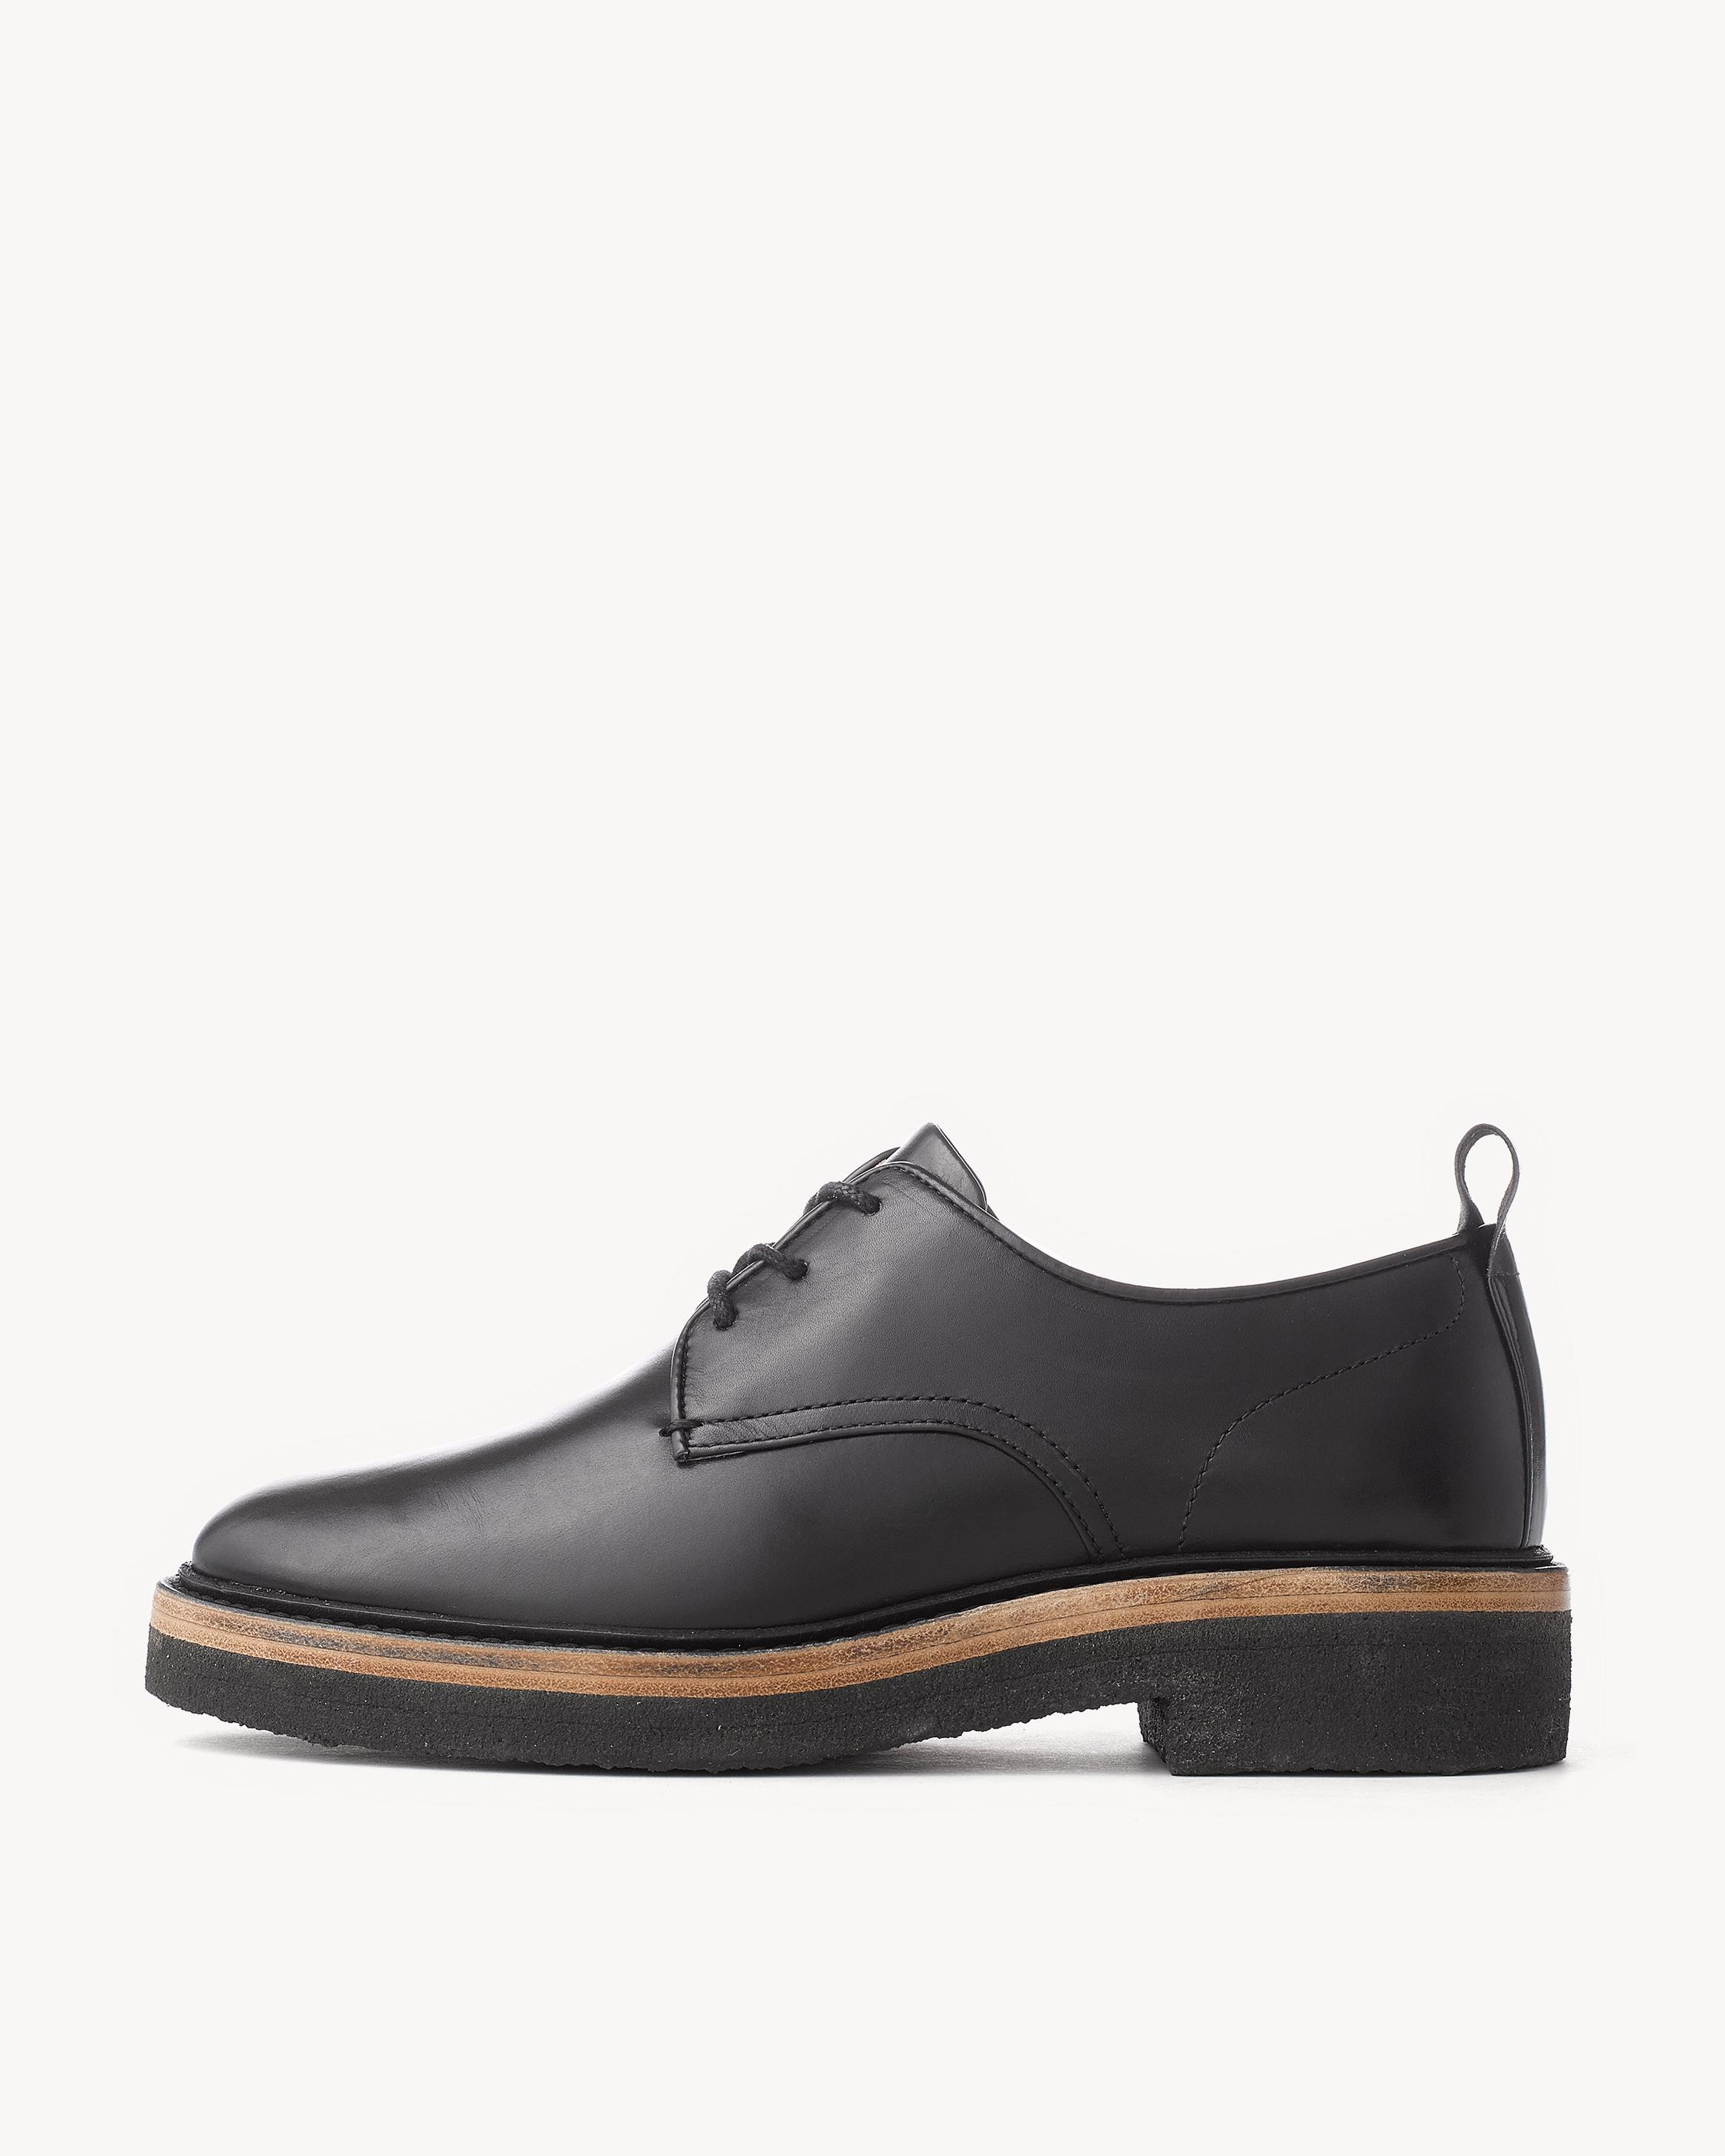 Rag & Bone Leather Laceless Oxfords outlet locations sale online JeqeVF